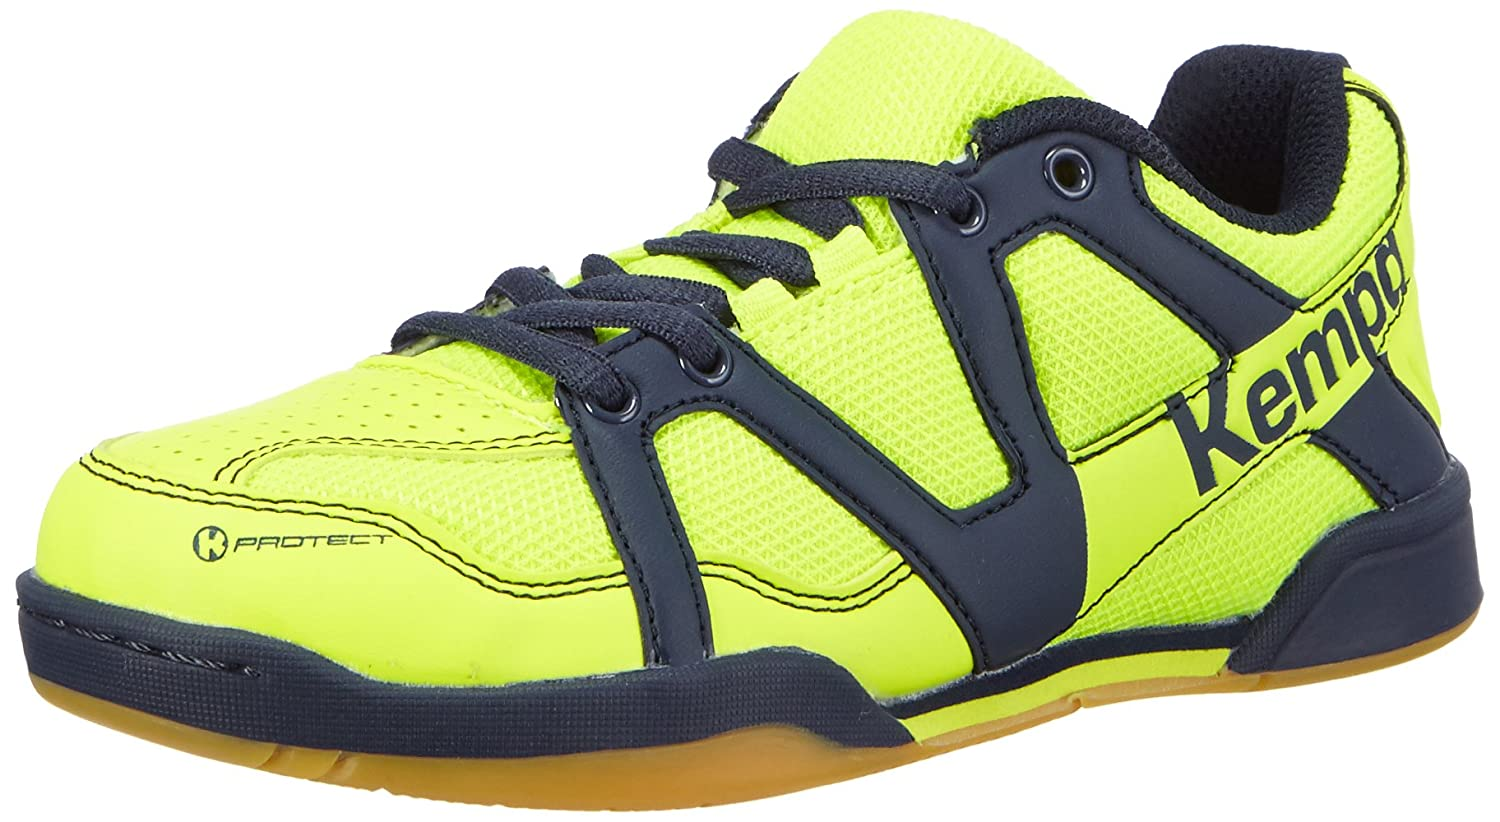 Kempa Team Junior Zapatillas de Baloncesto Unisex para Ni/ños